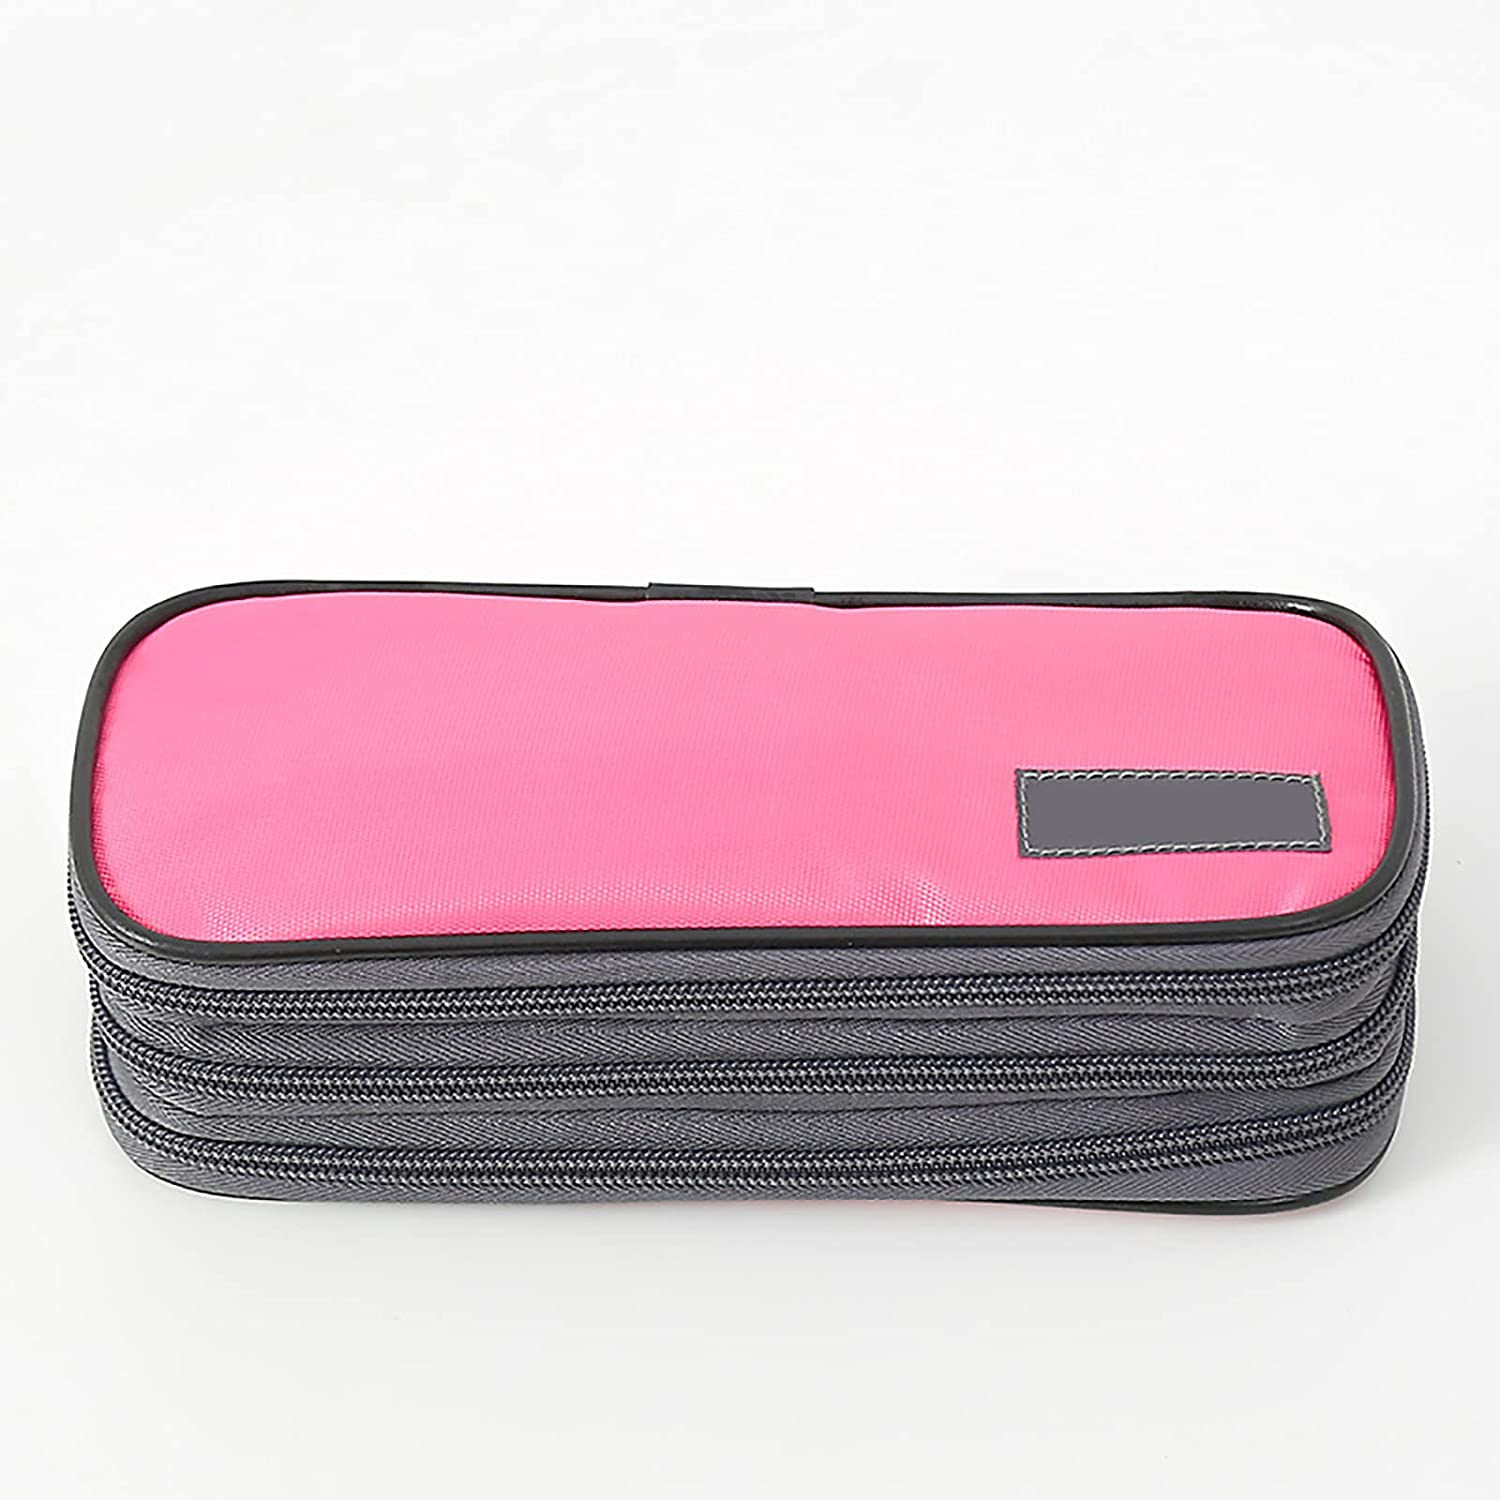 HAOANGZHE Limited time cheap sale Pencil Box New product!! Zip Three-Layer Multi-Function